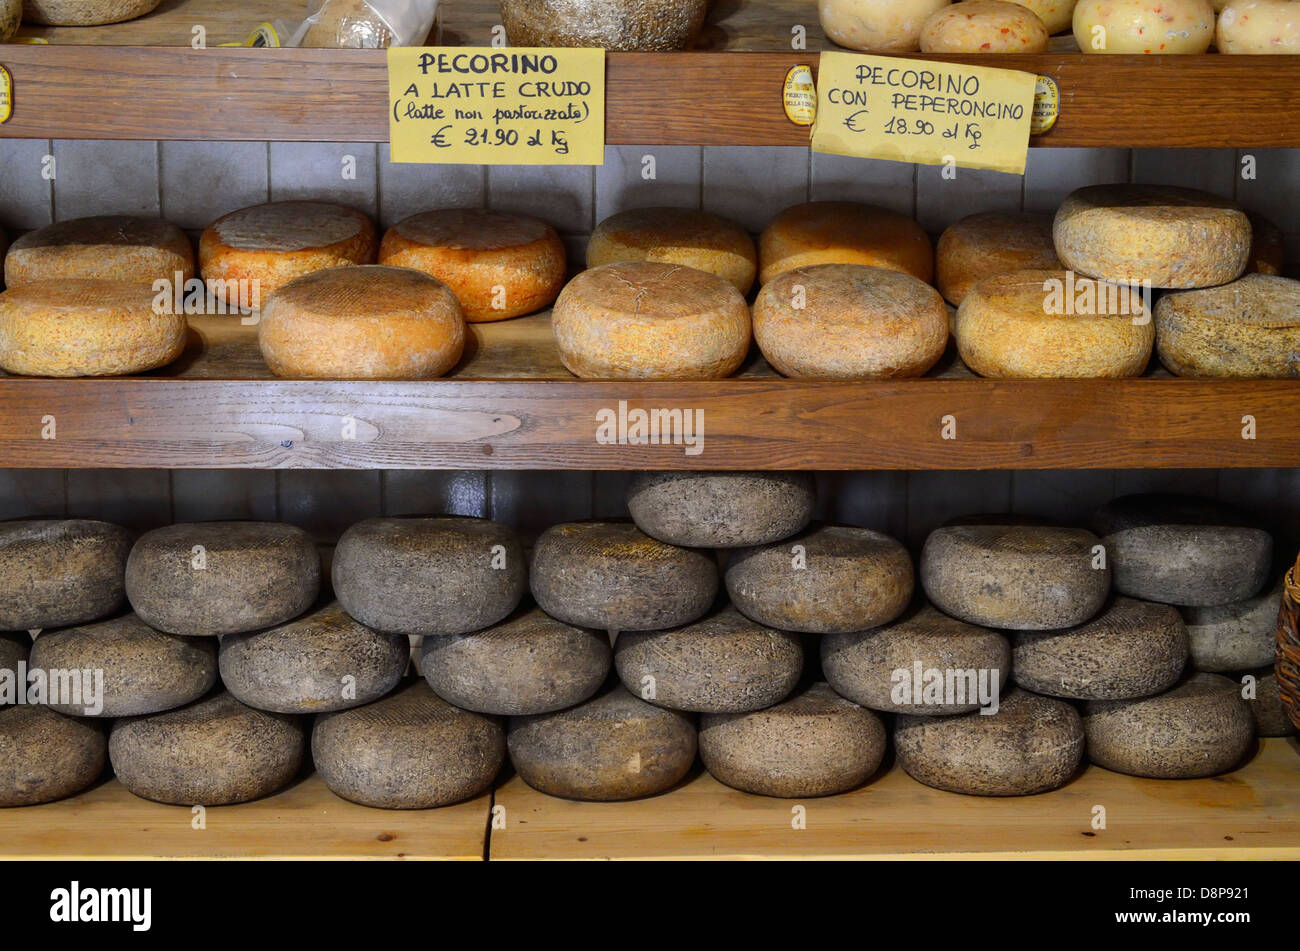 Cheese on display at a shop in Pienza, Italy. - Stock Image